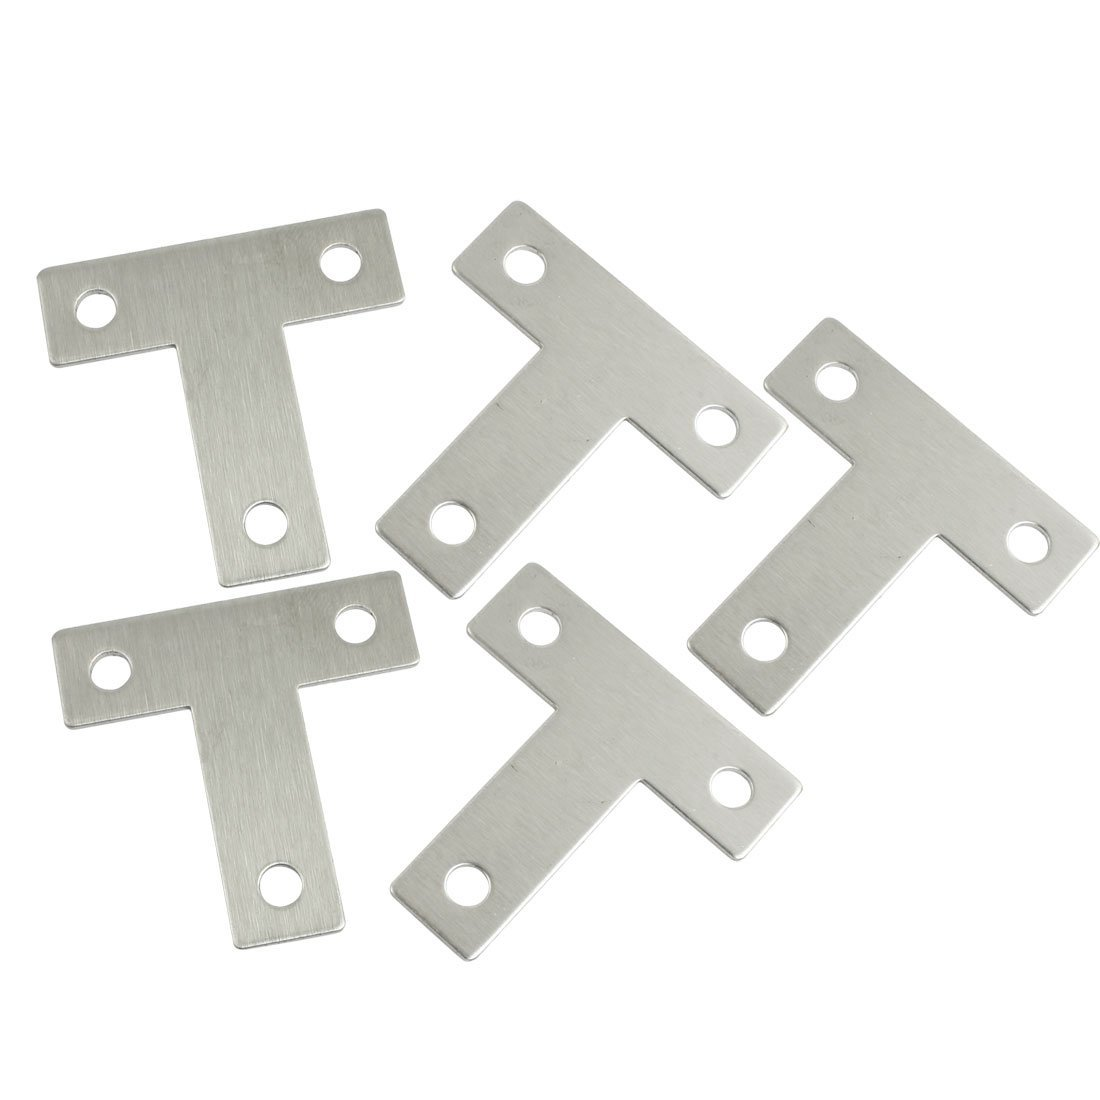 5 Pcs Angle Plate Corner Brace Flat T Shape Repair Bracket 10pcs lot stainless steel flat corner brace fixed angle plate connector repair bracket 38mm 15 6mm thickness 1 73mm k160